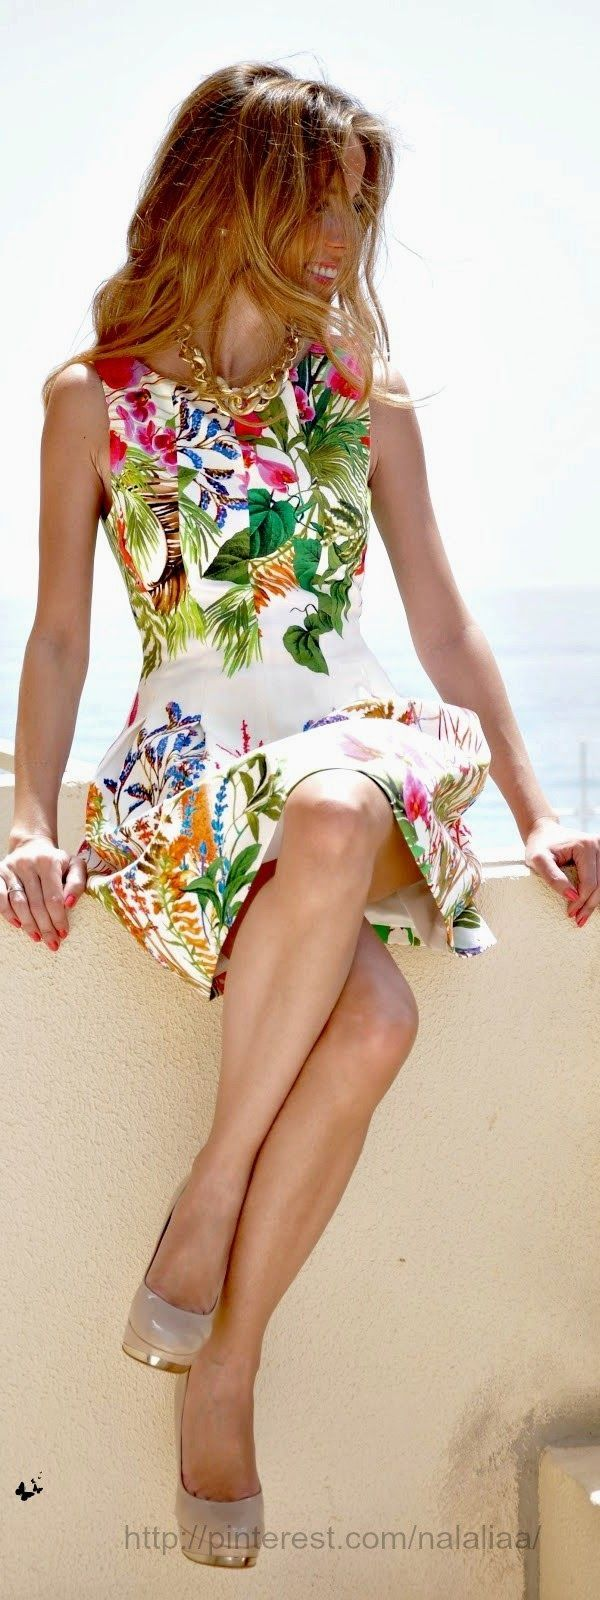 Floral Print Dress       http://sulia.com/channel/fashion/f/7de36b0d-590a-4f8f-aa65-611bba22b864/?source=pin&action=share&ux=mono&btn=small&form_factor=desktop&sharer_id=125430493&is_sharer_author=true&pinner=125430493